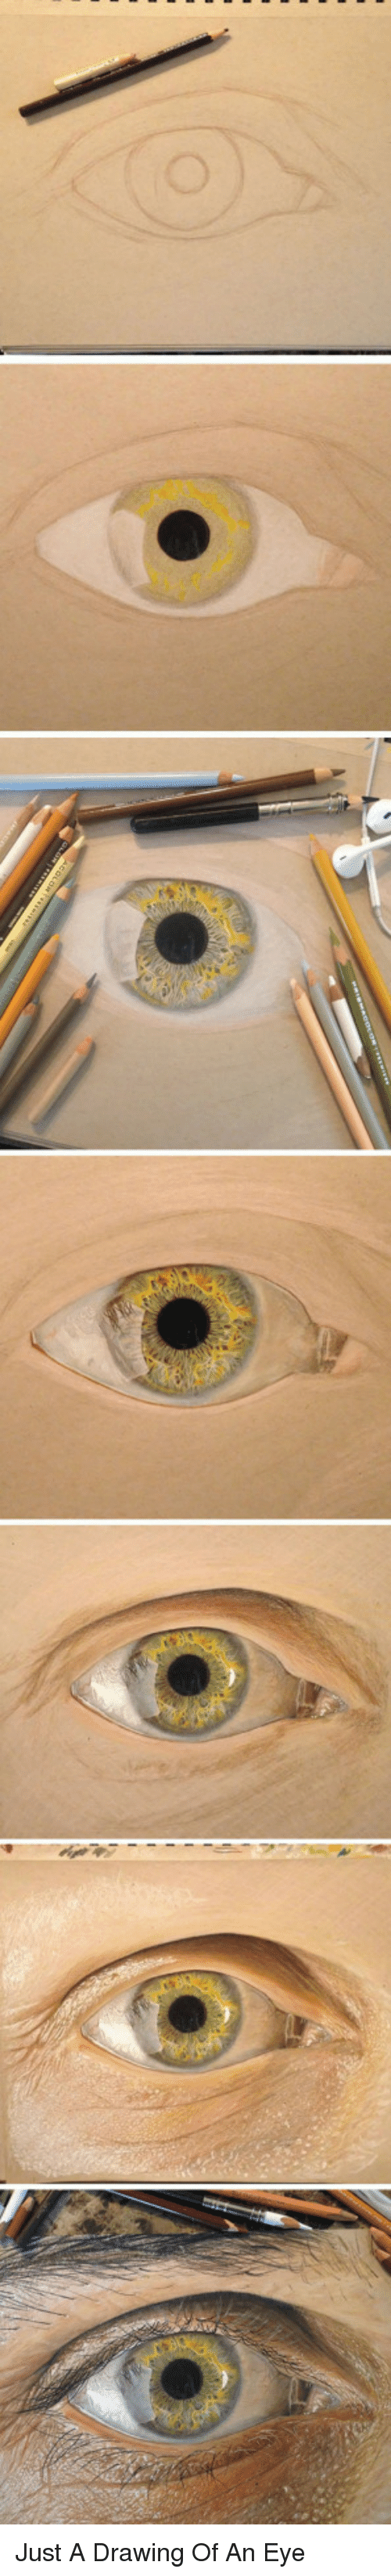 Drawing Of An: <p>Just A Drawing Of An Eye</p>